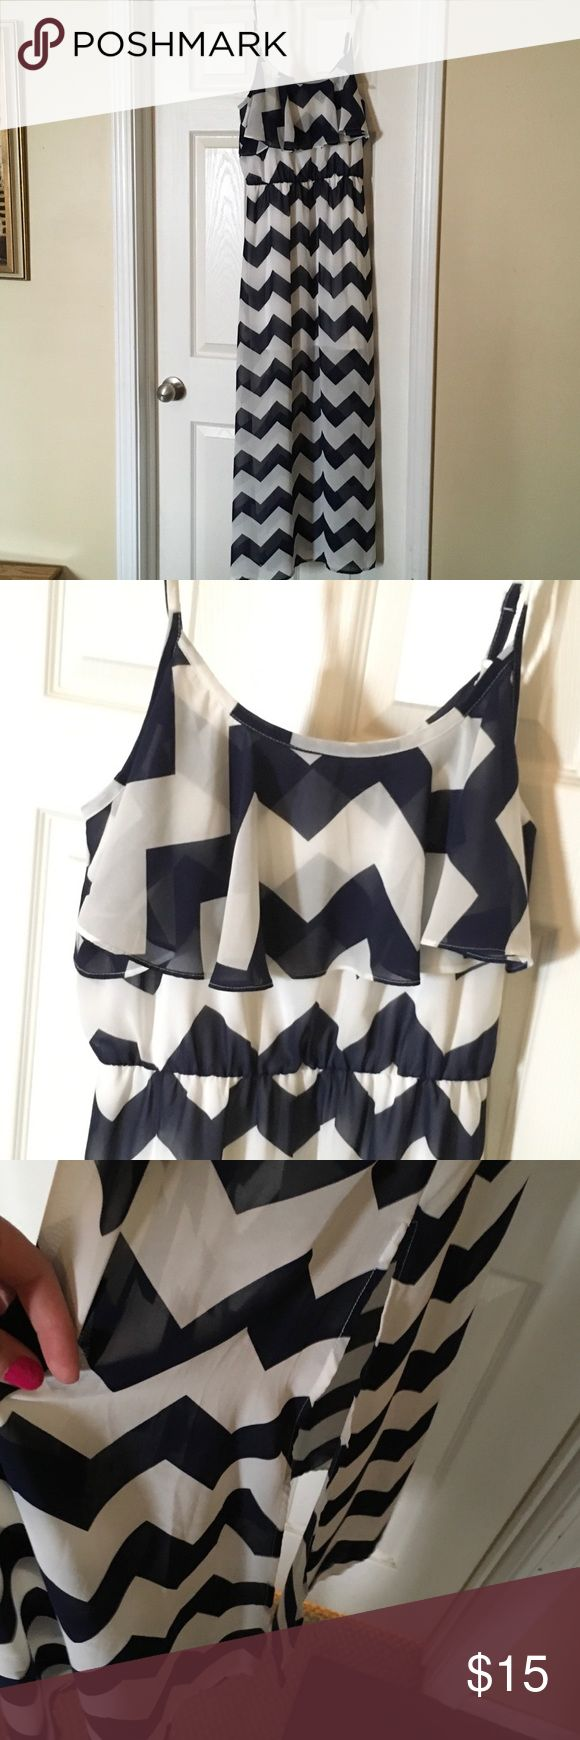 Chevron maxi dress Navy and white chevron striped maxi dress with spaghetti straps, a ruffle at the top & a split in the skirt. Size medium, purchased from Charming Charlie & worn only once for a 4th of July function. Dresses Maxi